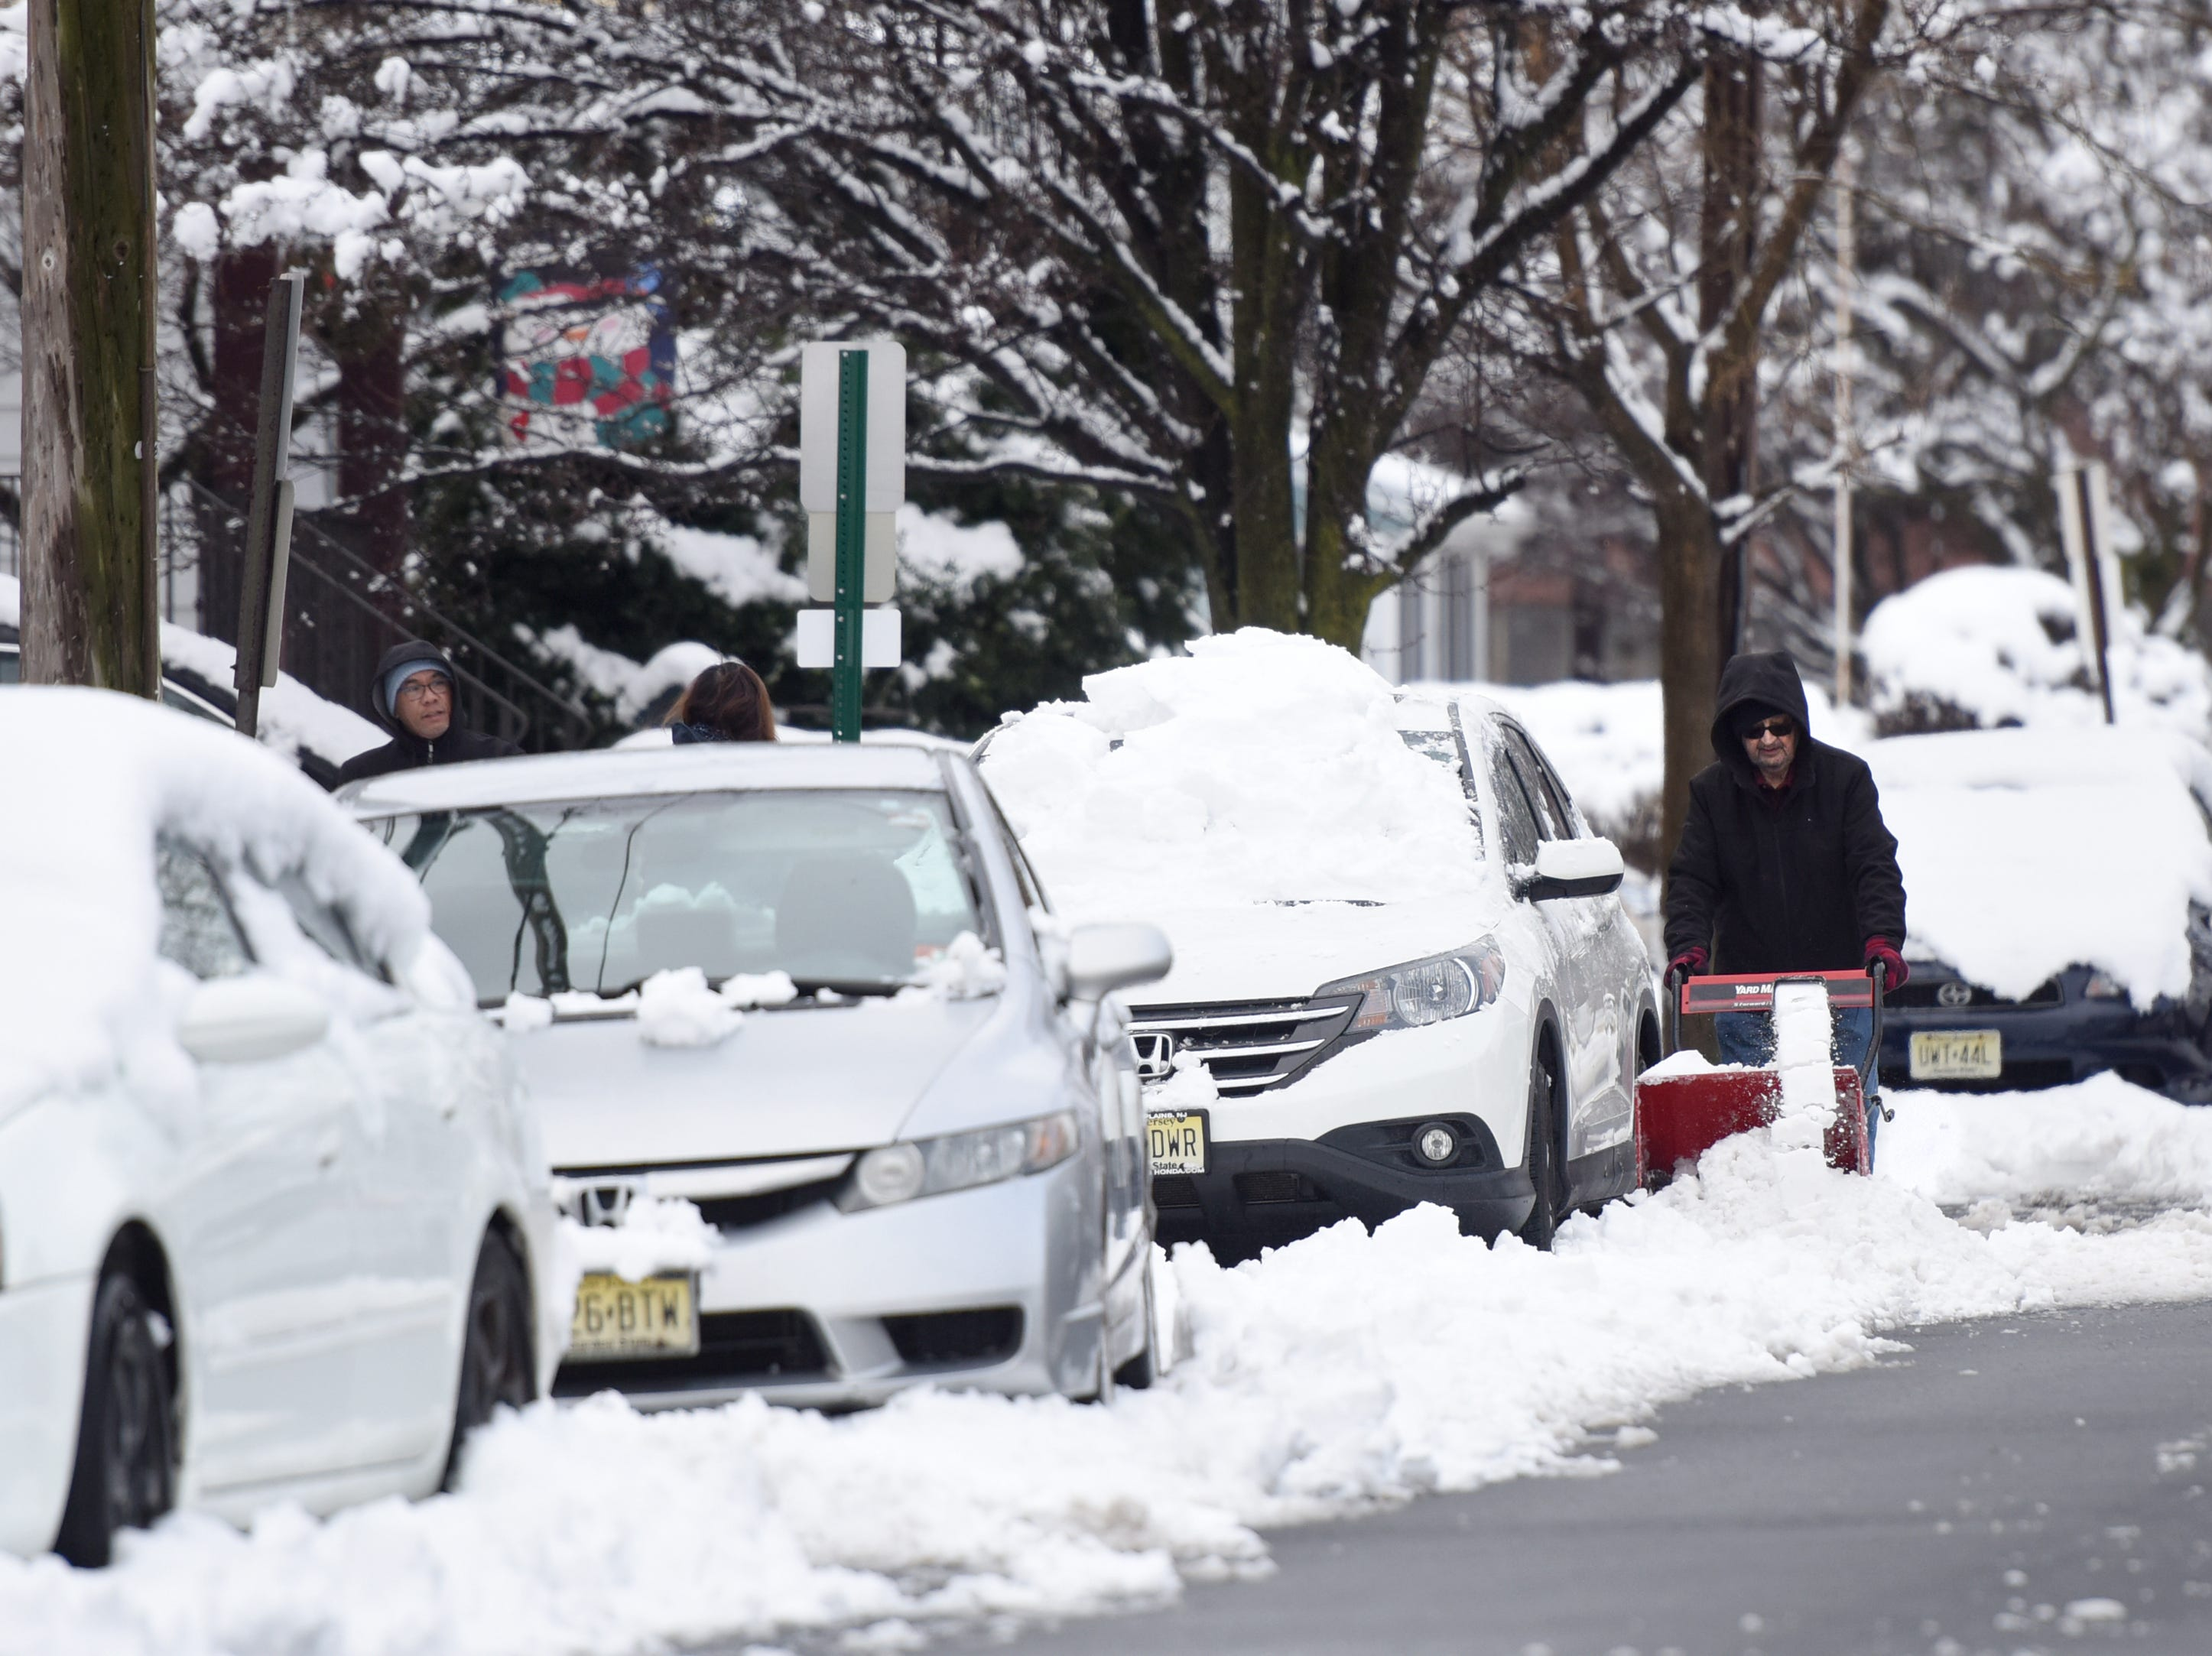 Residents on DeMott Ave. in Clifton clear snow on Monday, March 4, 2019.